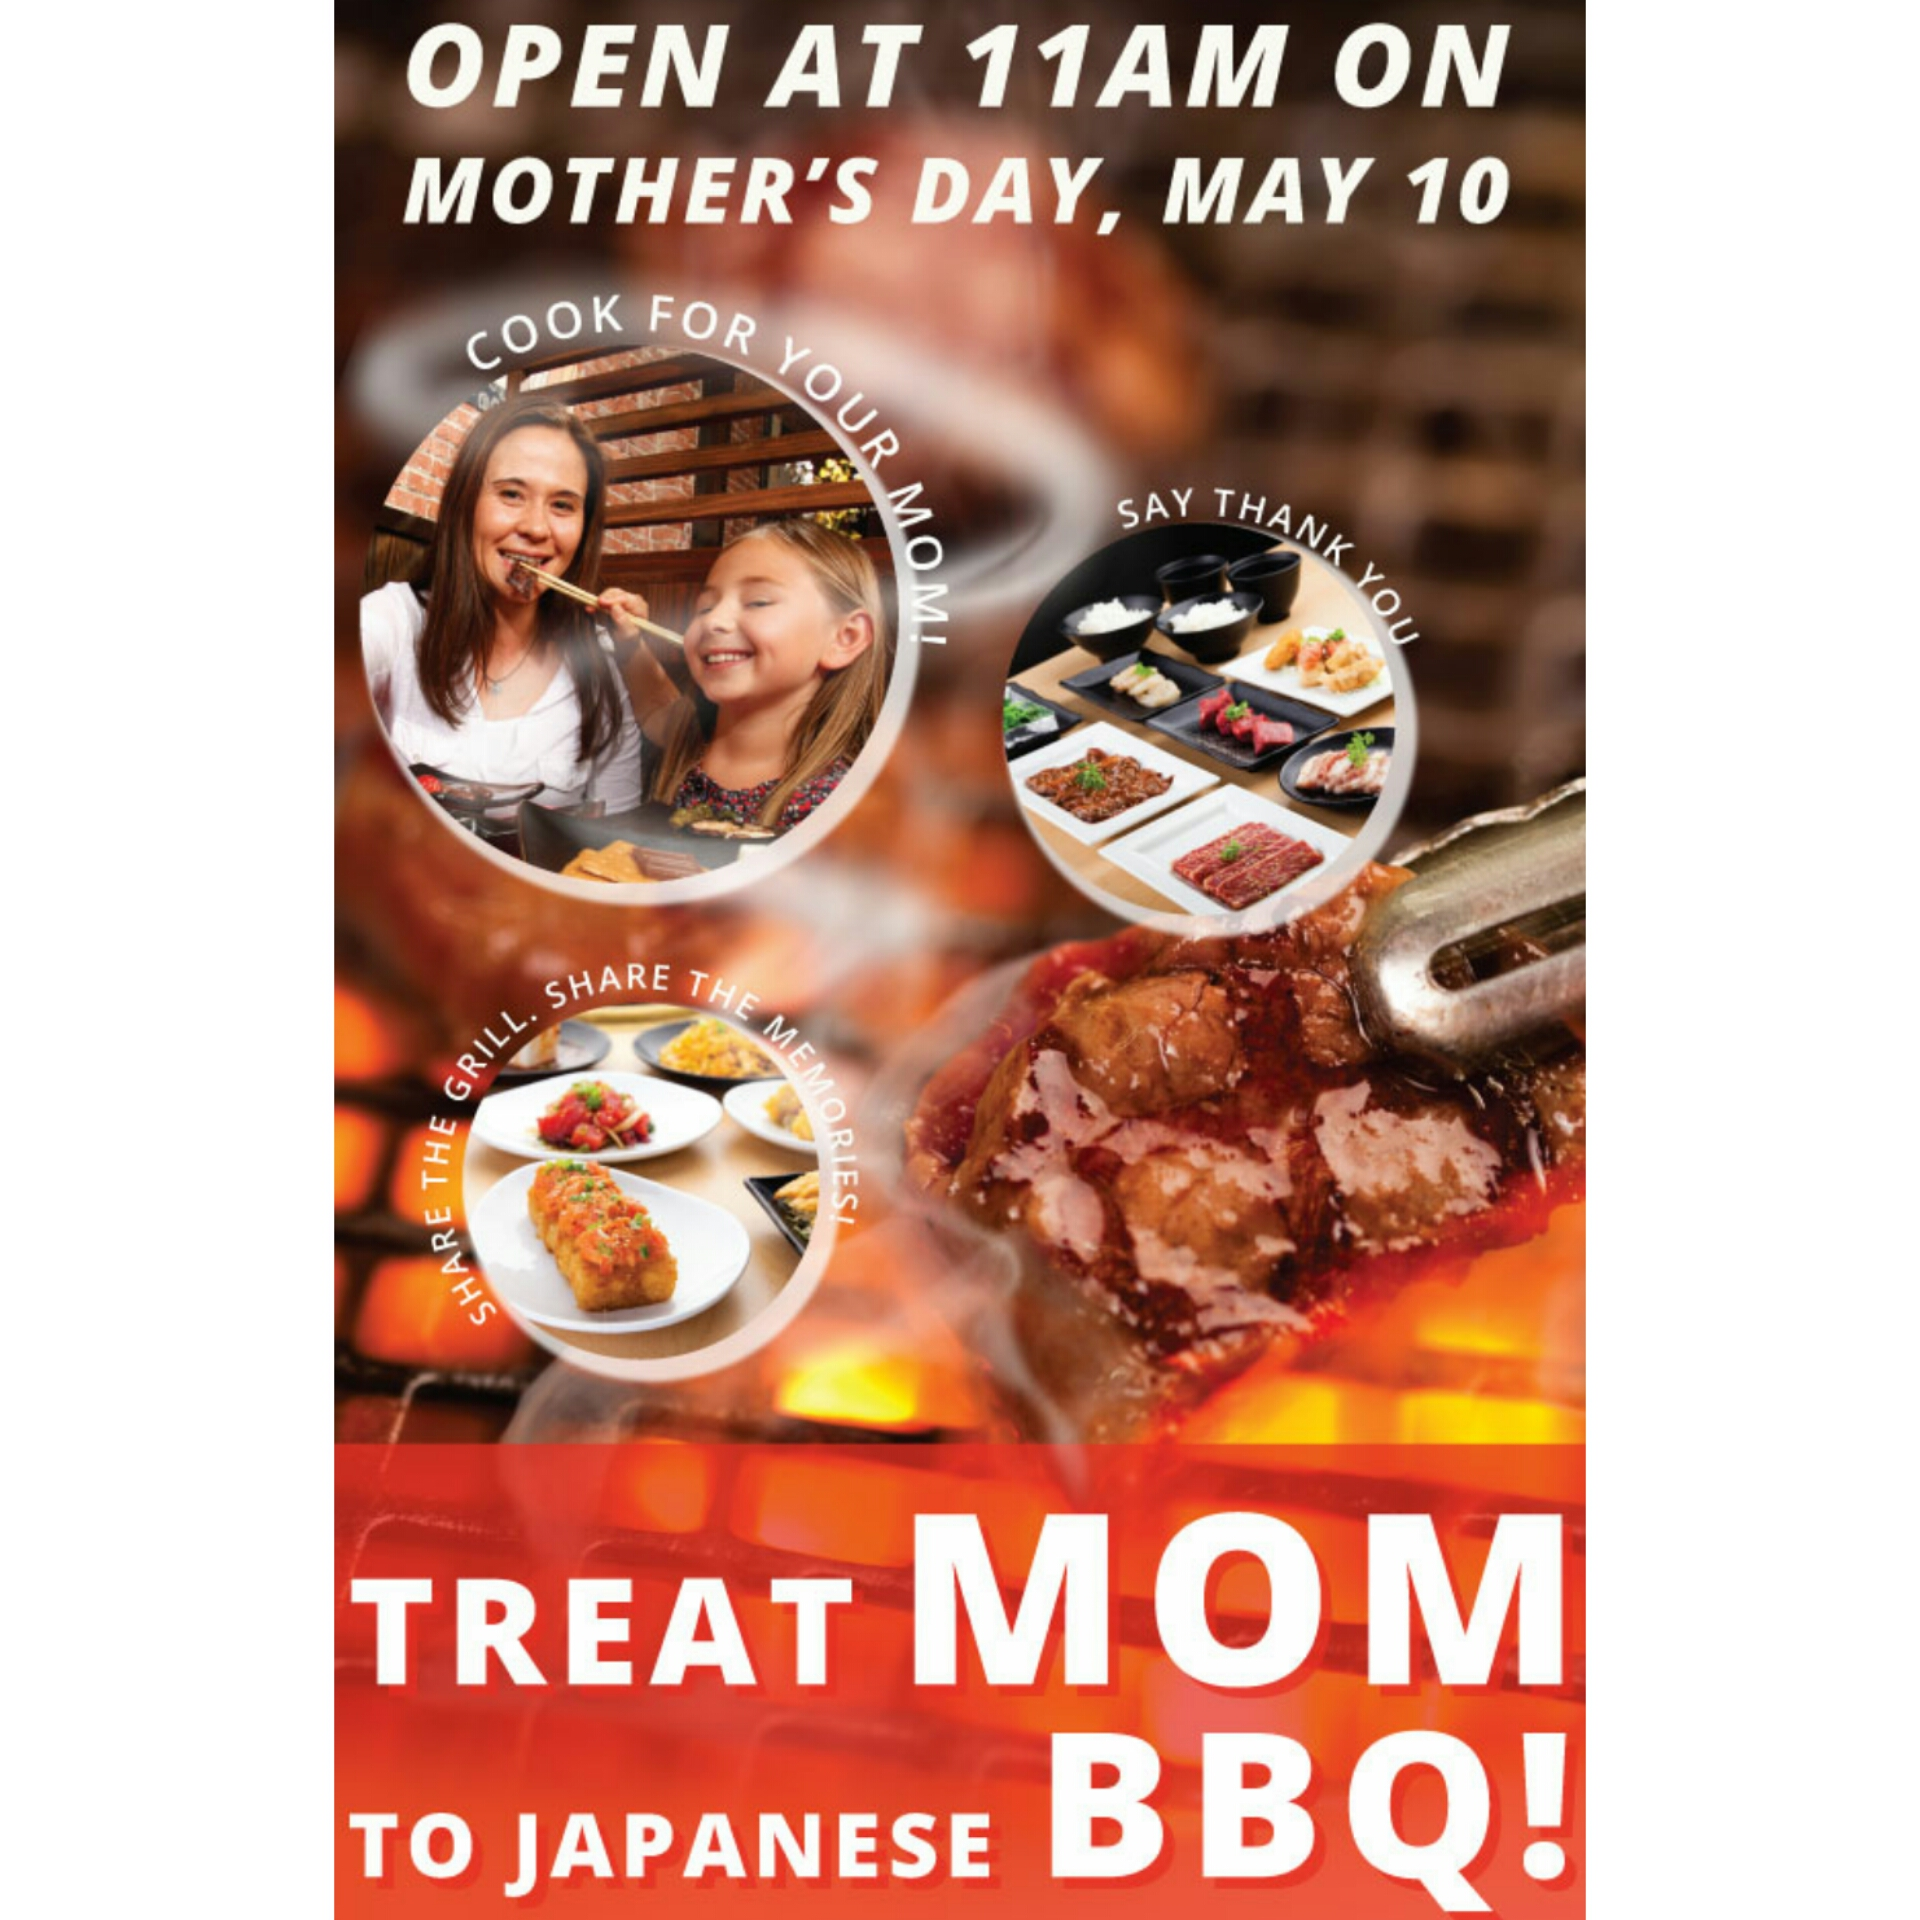 Mother s Day  dining deals  mom  mother s day 2015  gift ideasMother s Day Dining Deals and Gift Ideas 2015   Dani s Decadent Deals. Orange County Dining Deals. Home Design Ideas